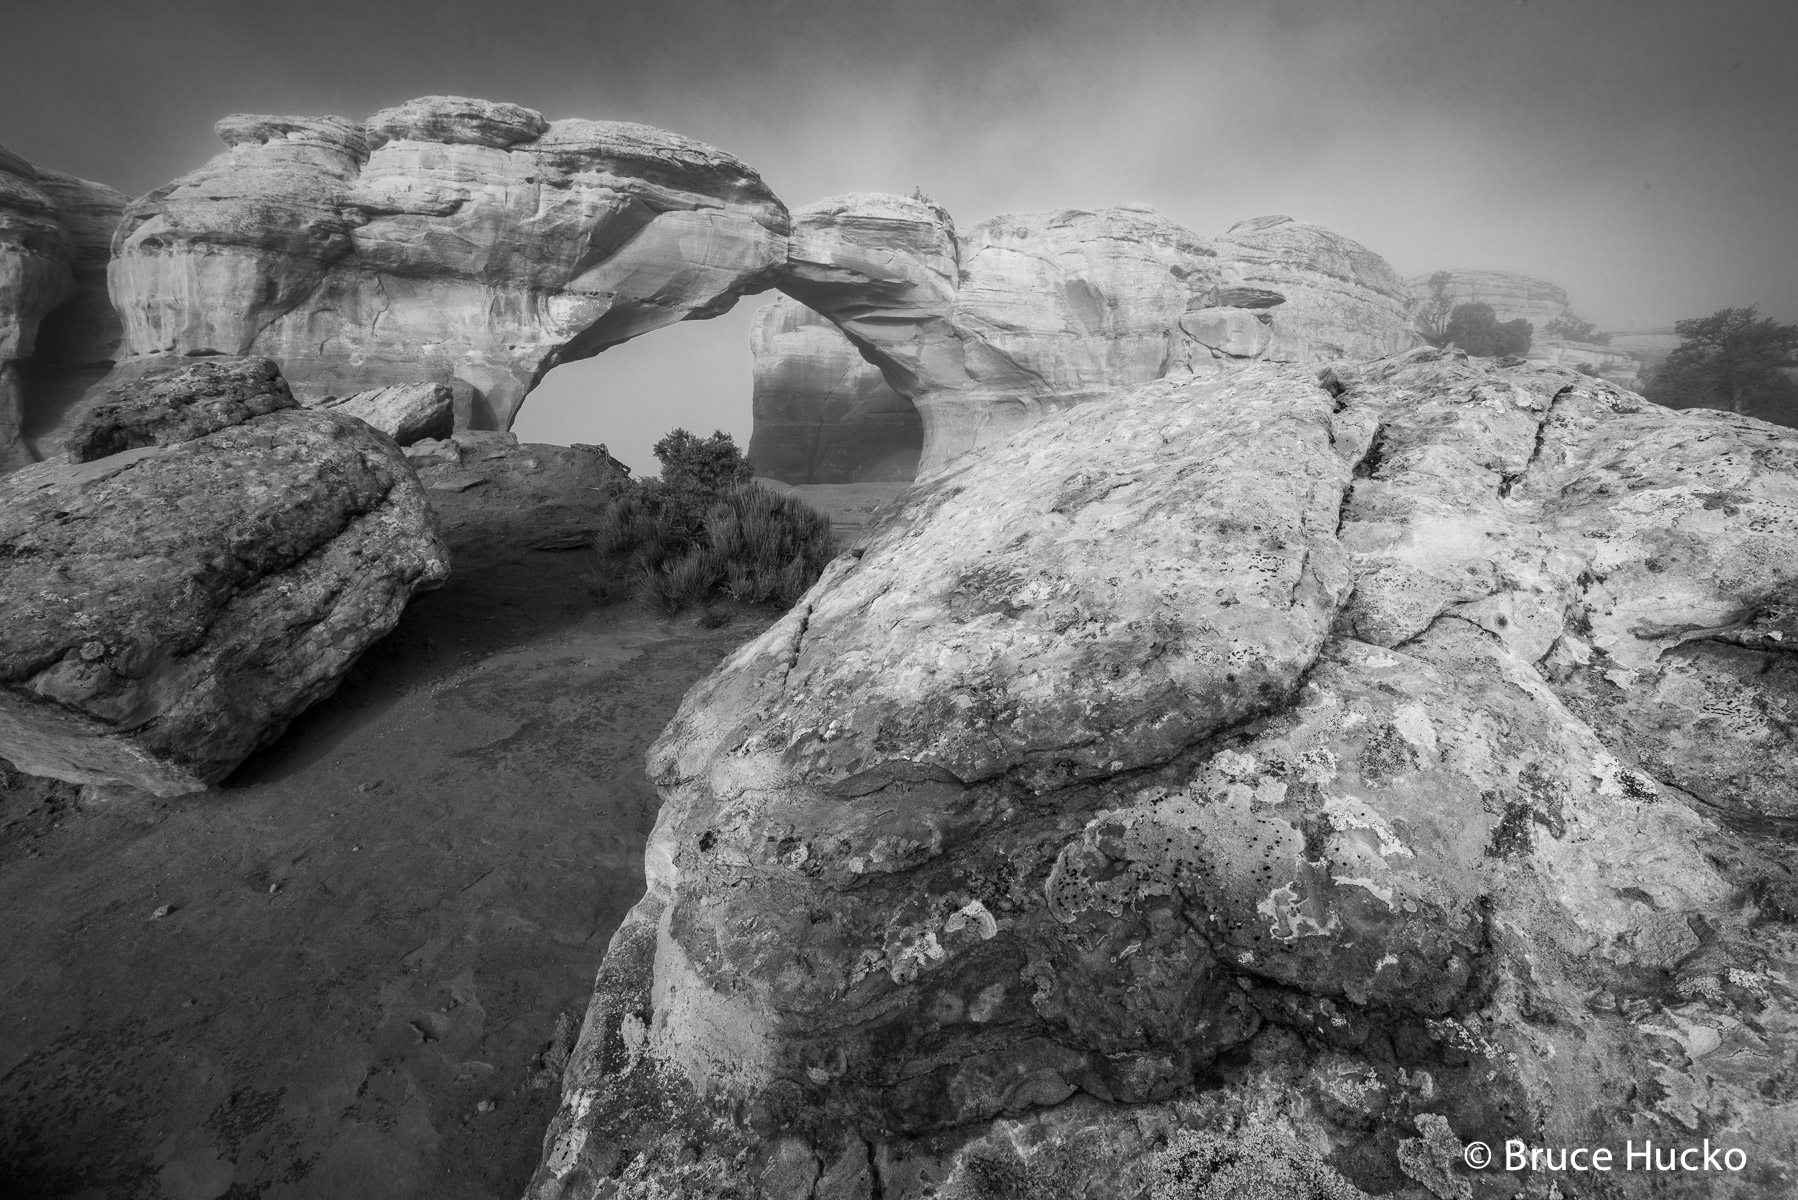 Arches National Park, Broken Arch, arches NP, photo